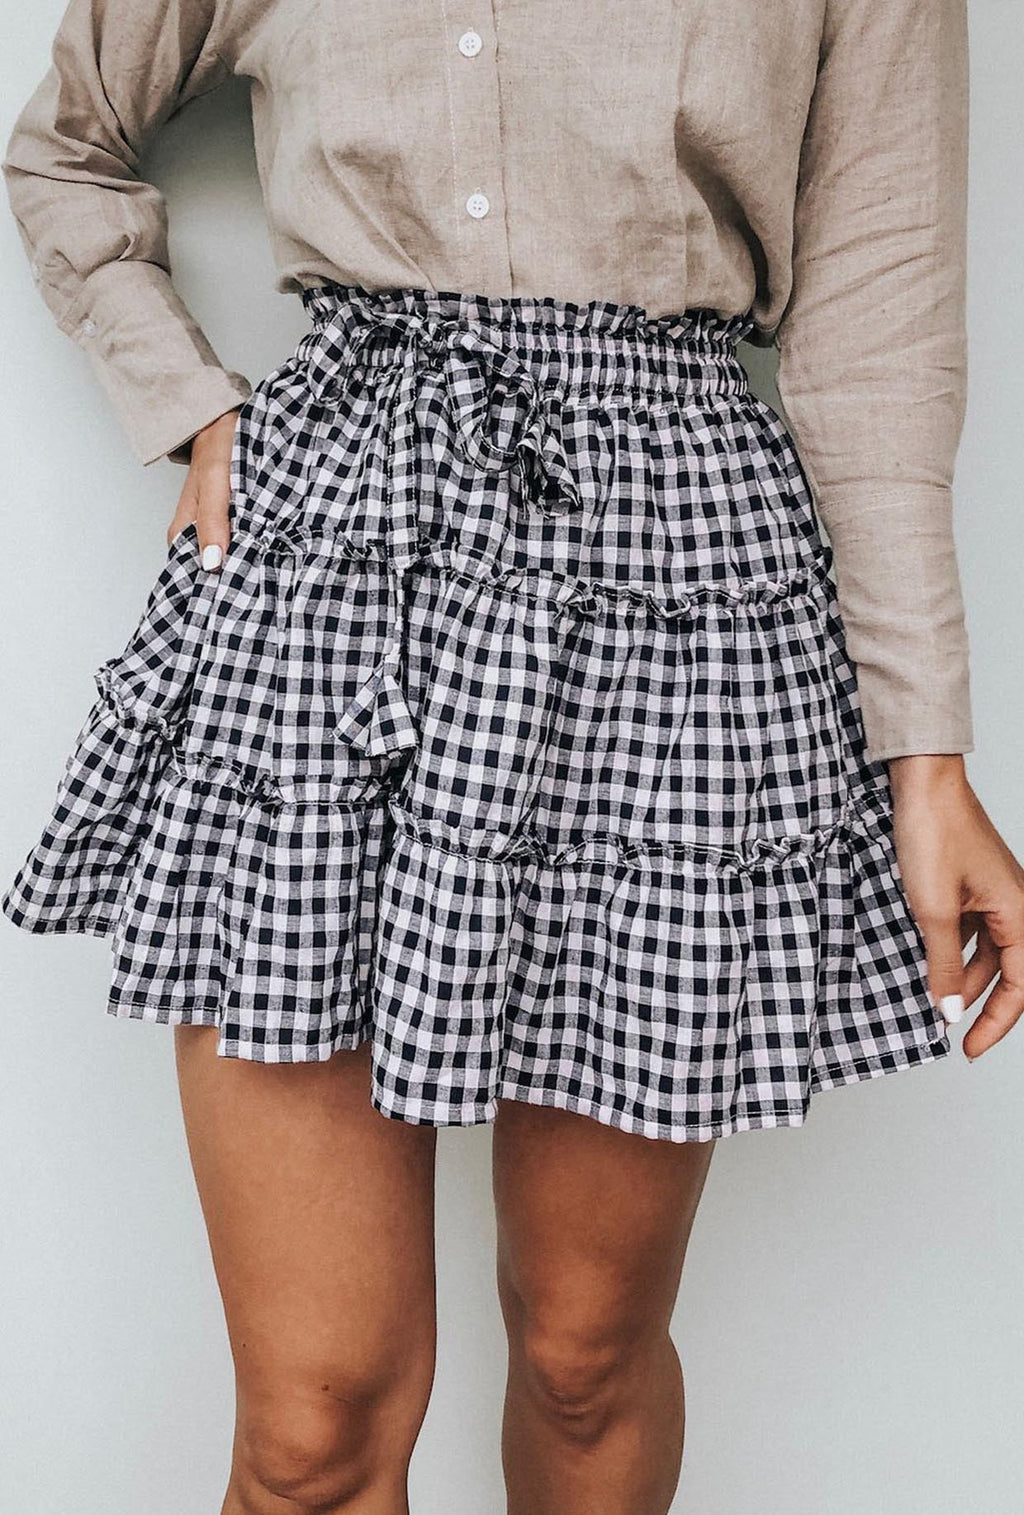 LJC Designs Zanzibar Skirt in Navy Gingham